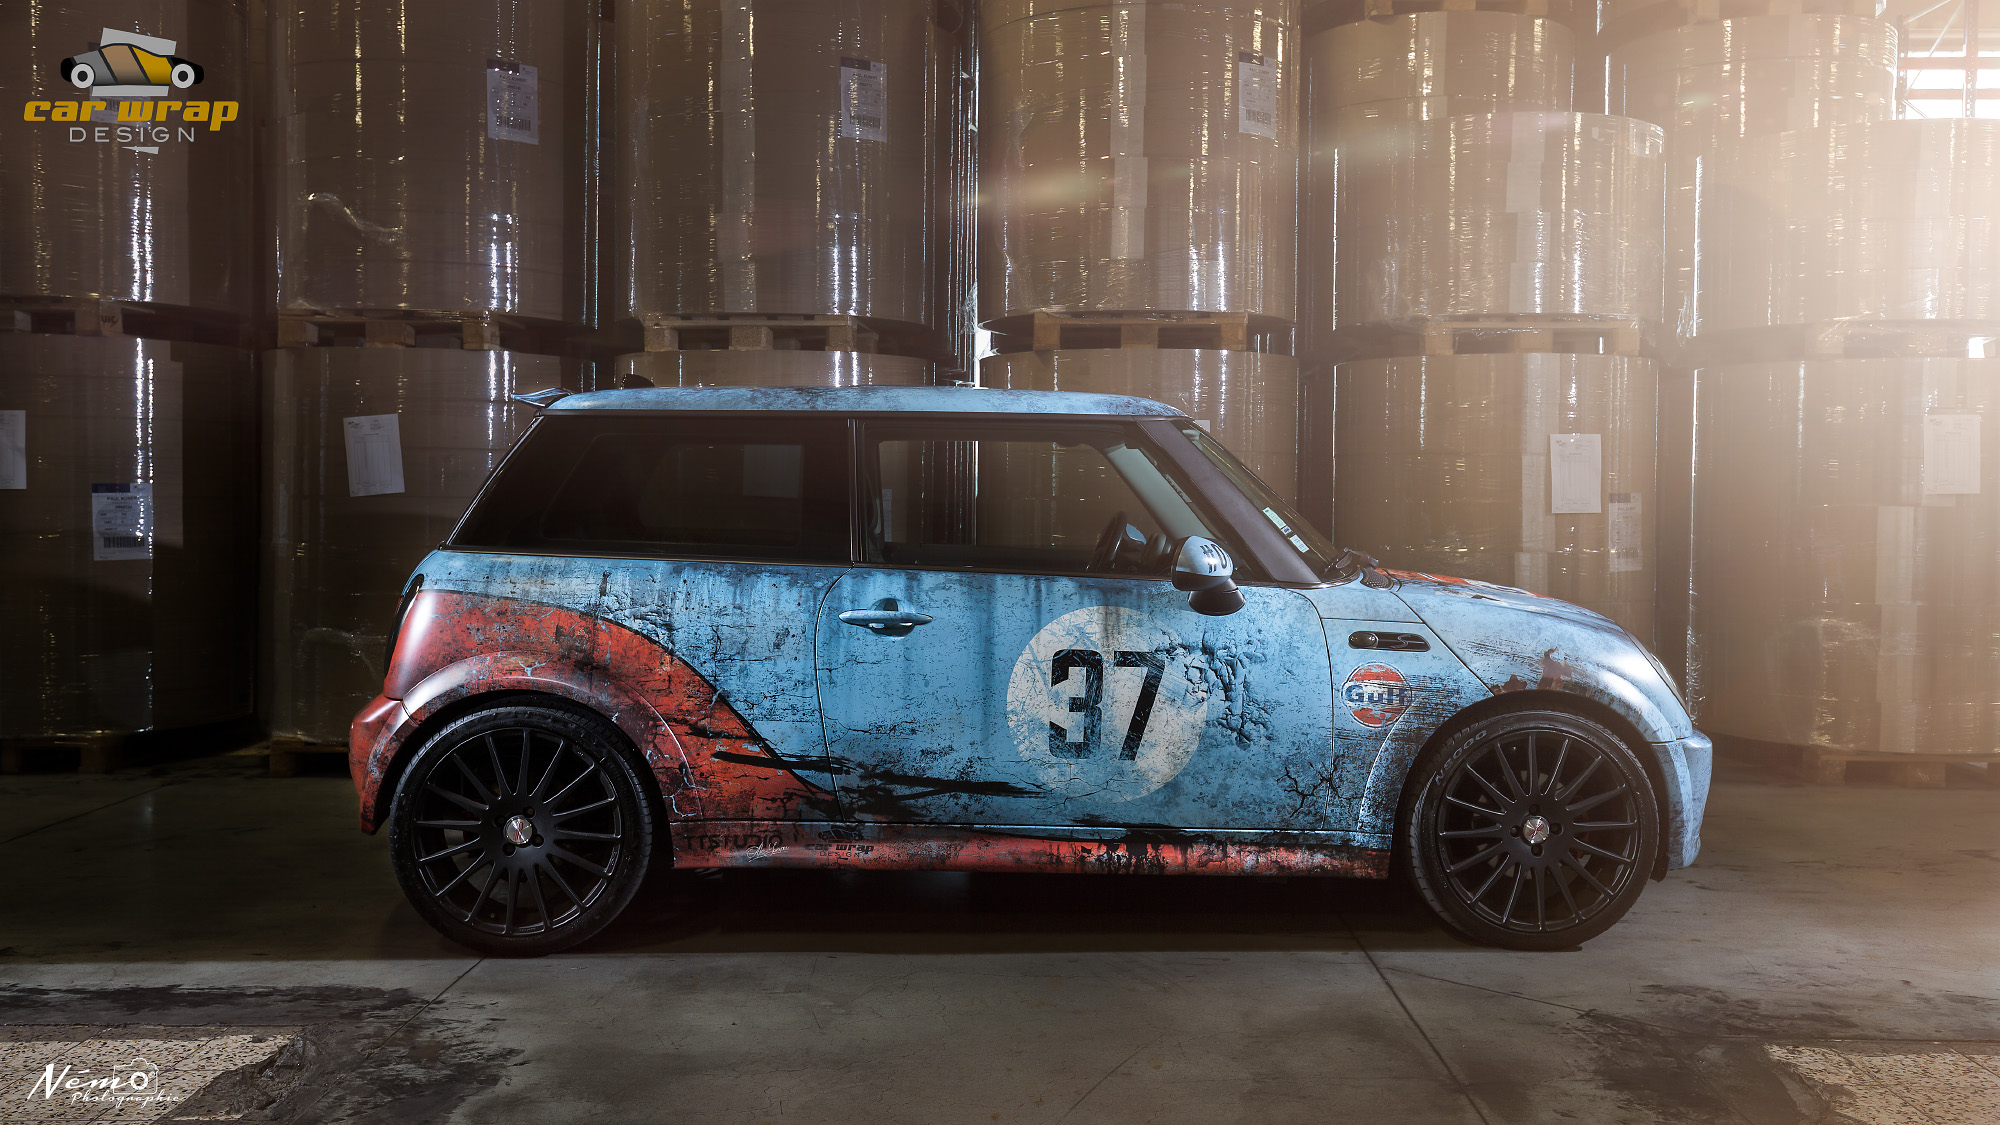 💥 Mini cooper used Gulf design 💥